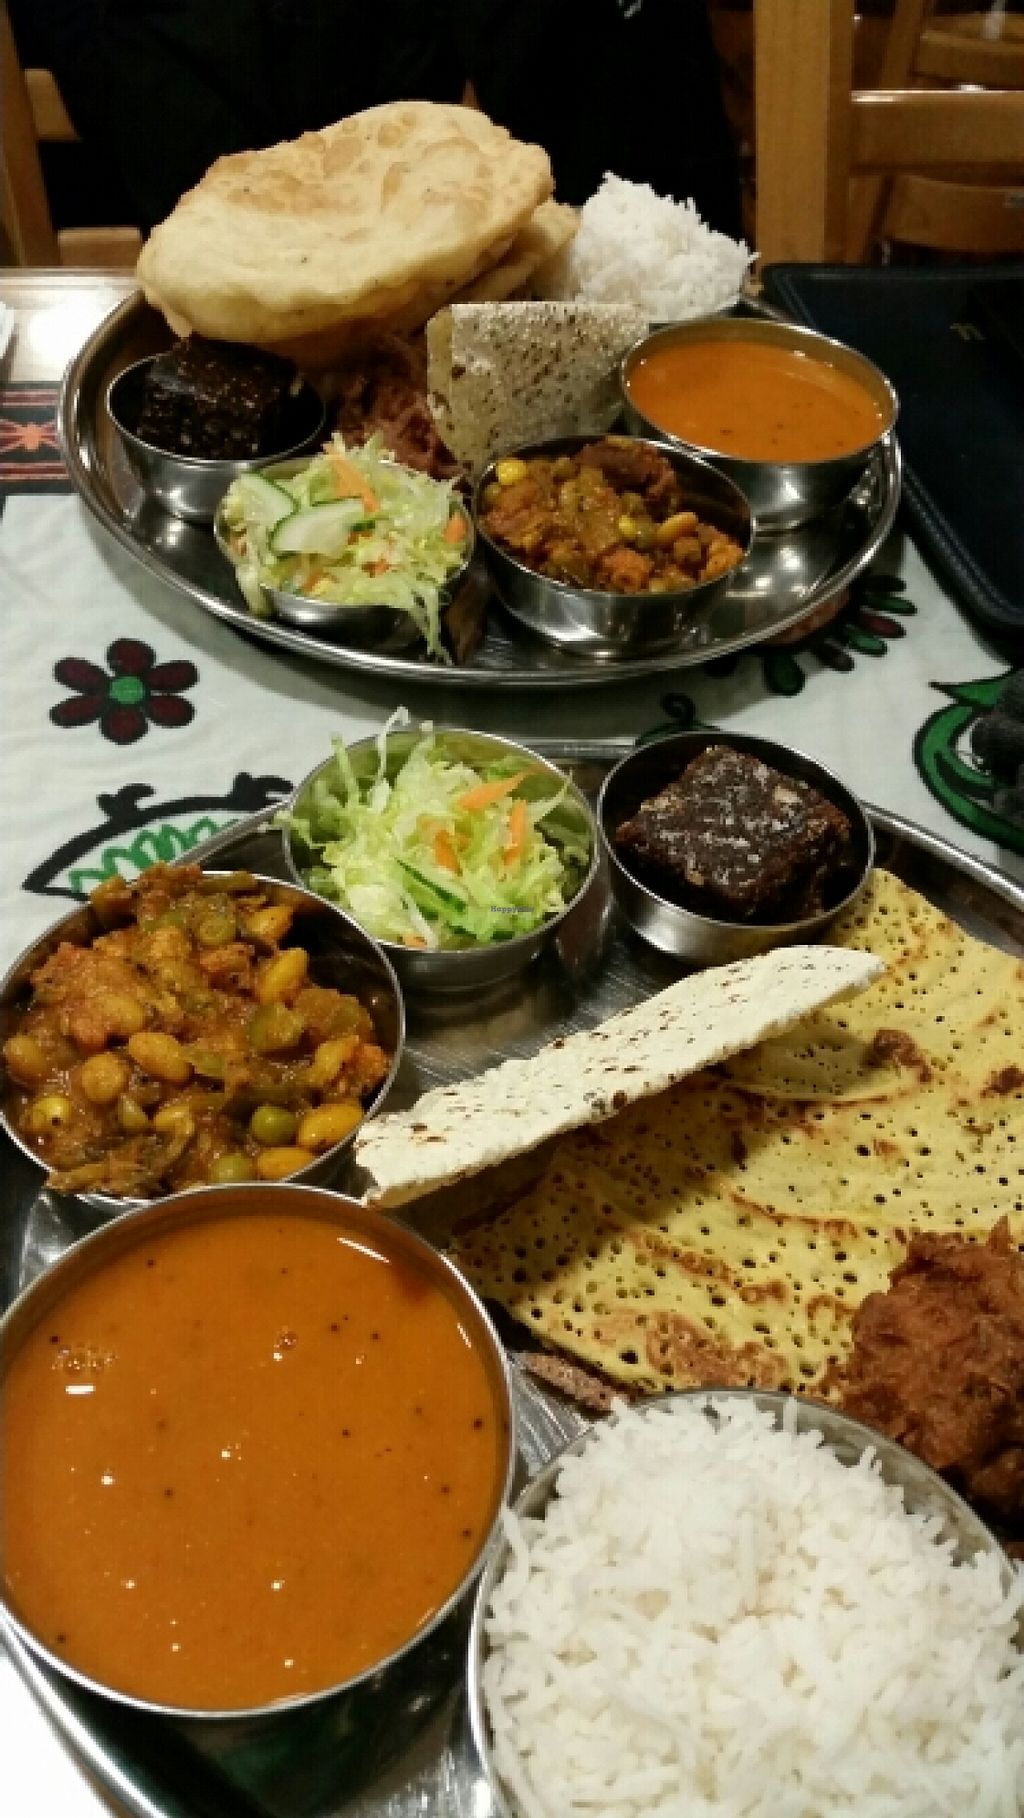 """Photo of Vegetarian Food Studio  by <a href=""""/members/profile/konlish"""">konlish</a> <br/>Vegan Tali one with Batura and other with Chickpea dosa <br/> December 23, 2015  - <a href='/contact/abuse/image/6736/129592'>Report</a>"""